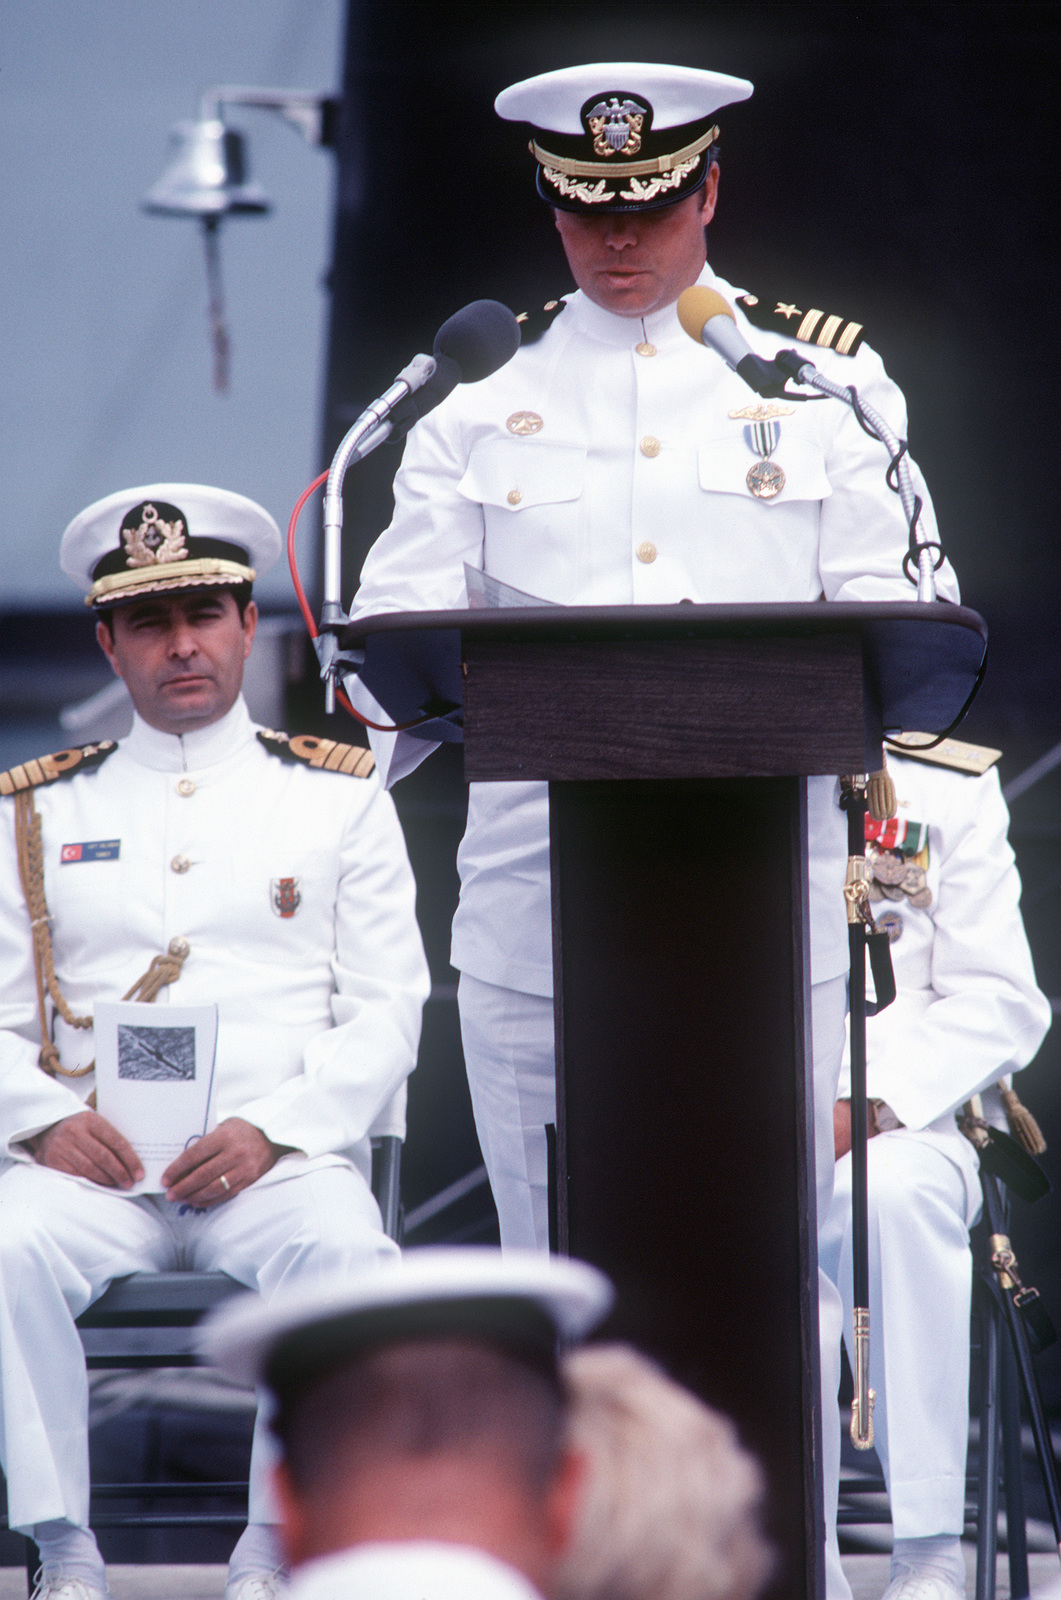 Commander G. Mike Wilson, ex-commanding officer, reads the decommissioning and transferring orders for the ex-USS GUDGEON (SSAG 567). The Tang class submarine, upon decommissioning, is being immediately transferred to the Turkish Navy on a five-year lease. The submarine is being renamed to TCG HIZIR REIS (S 342)